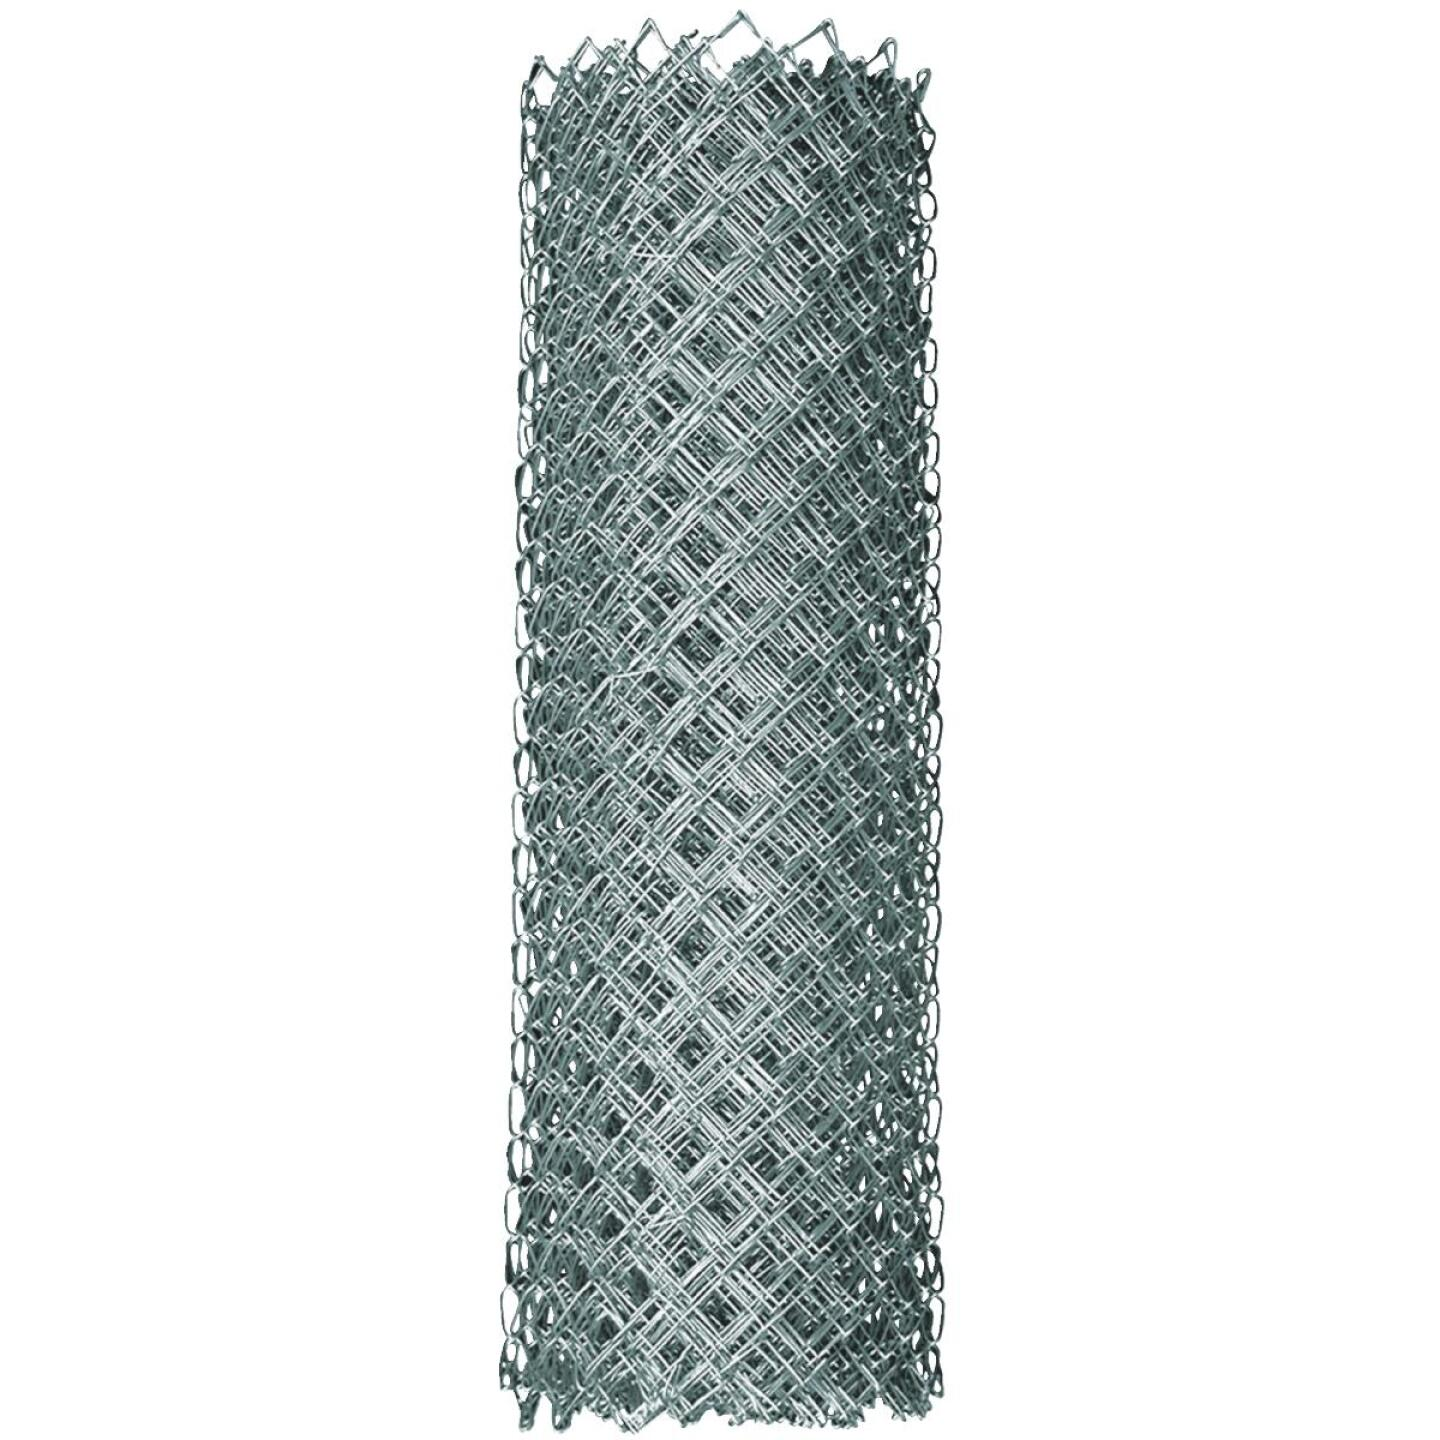 Midwest Air Tech 60 in. x 50 ft. 2-3/8 in. 11.5 ga Chain Link Fencing Image 1